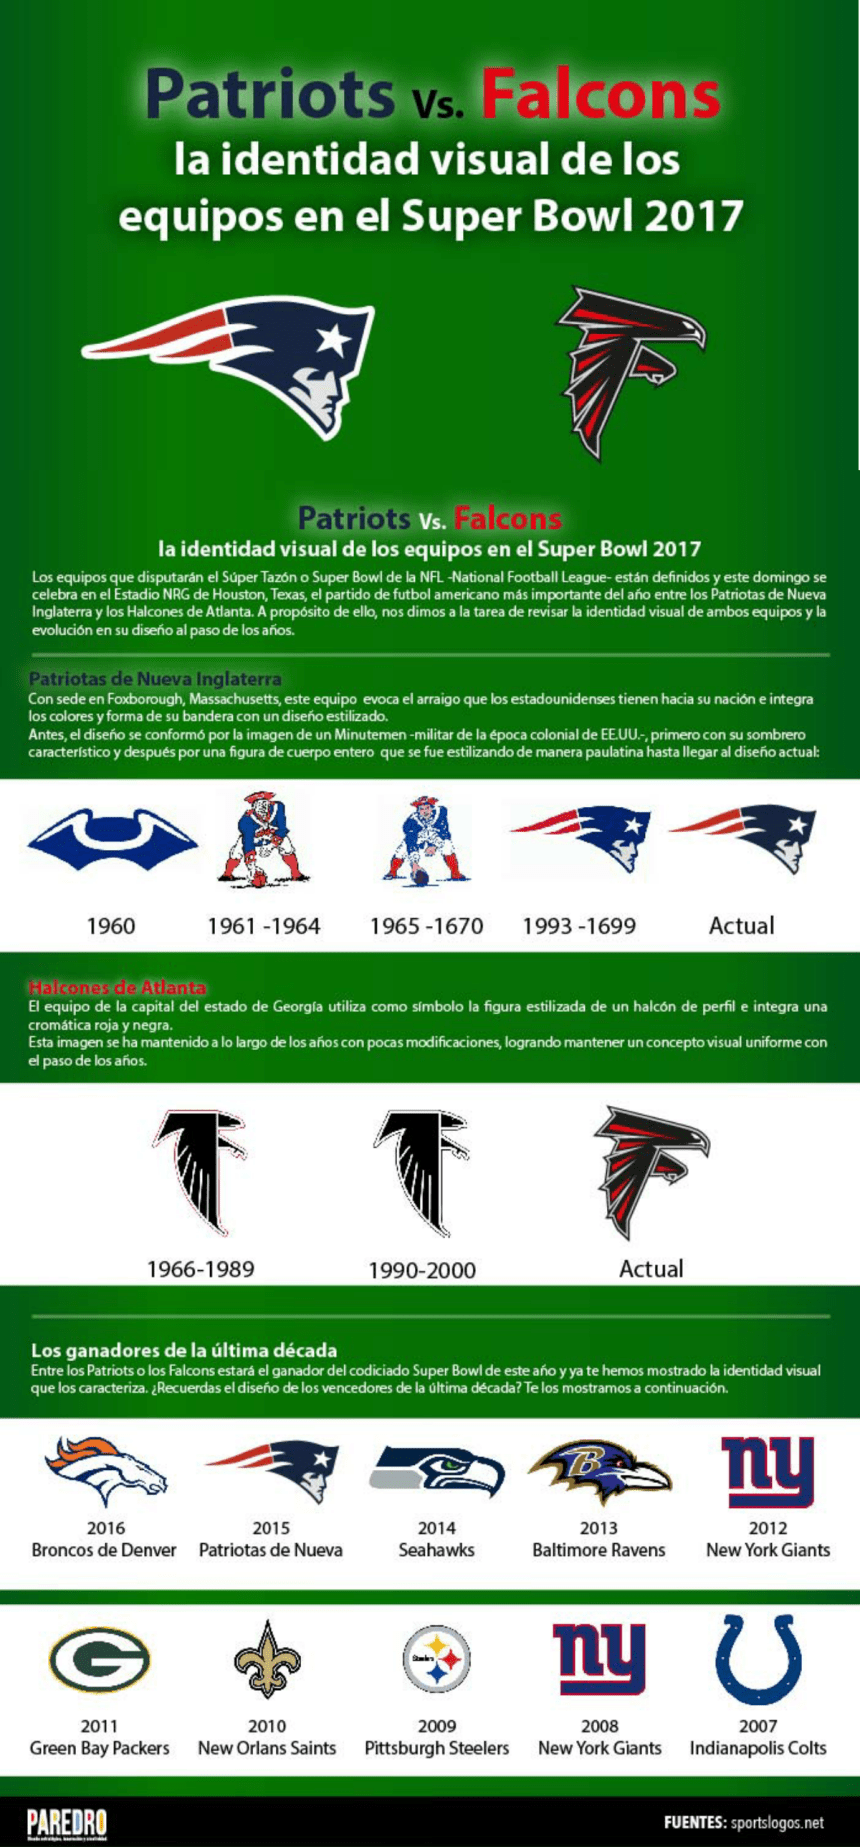 Patriotas vs Falcons: imagen visual